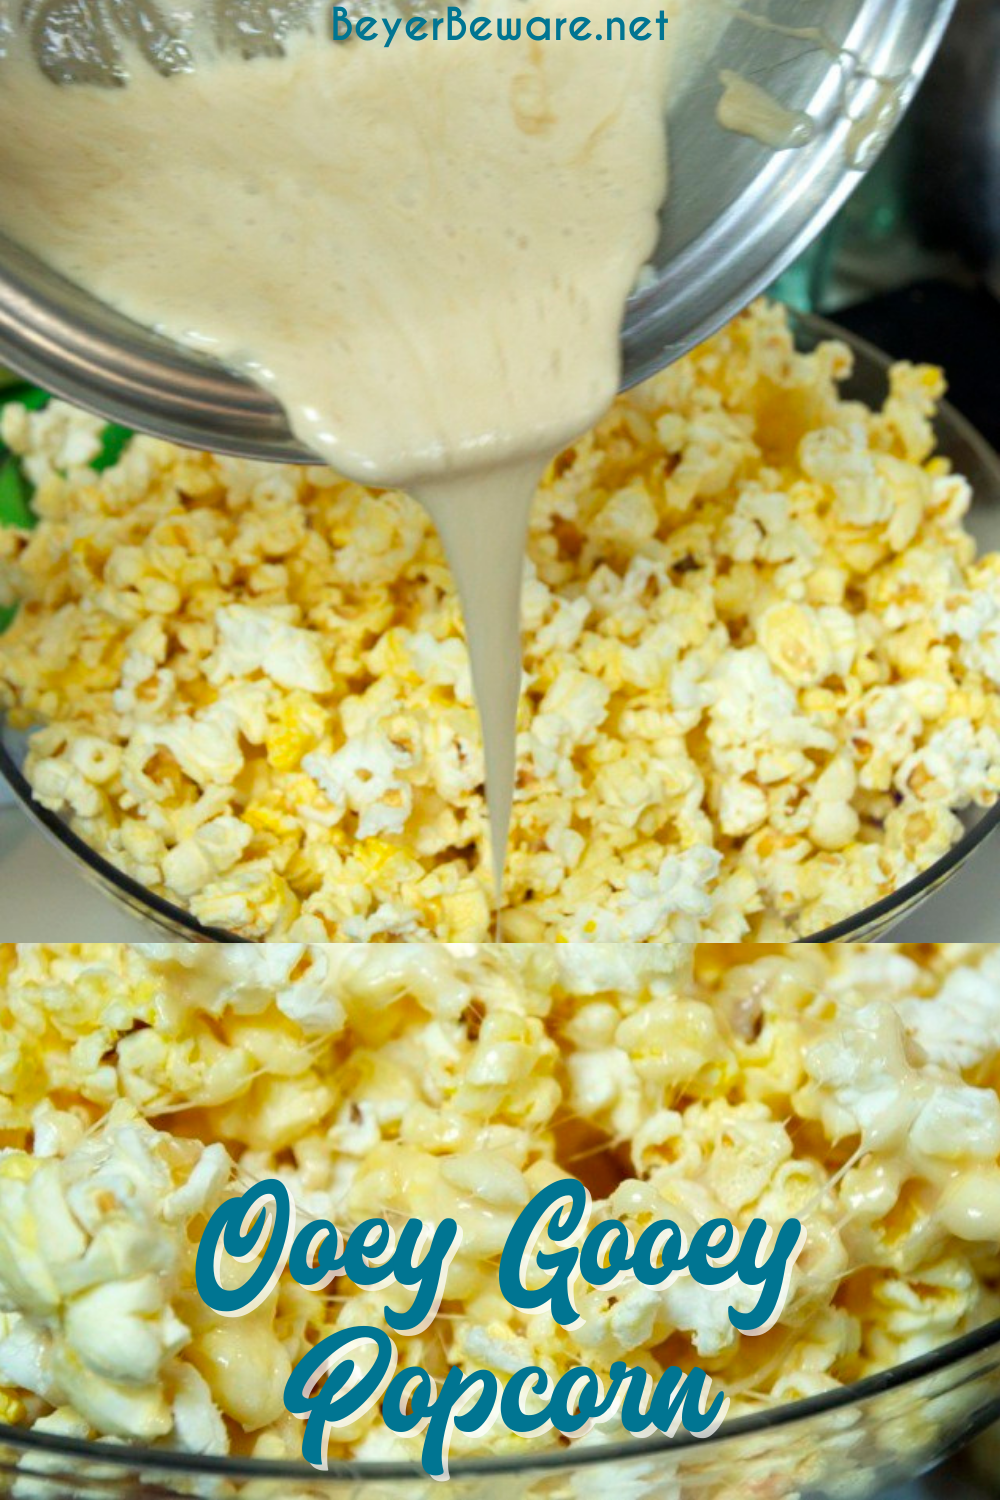 Ooey-Gooey Popcorn is made with marshmallow cream, theater popcorn, and more butter for a sweet and salty marshmallow popcorn snack. This popcorn snack is like popcorn balls in a large bowl.